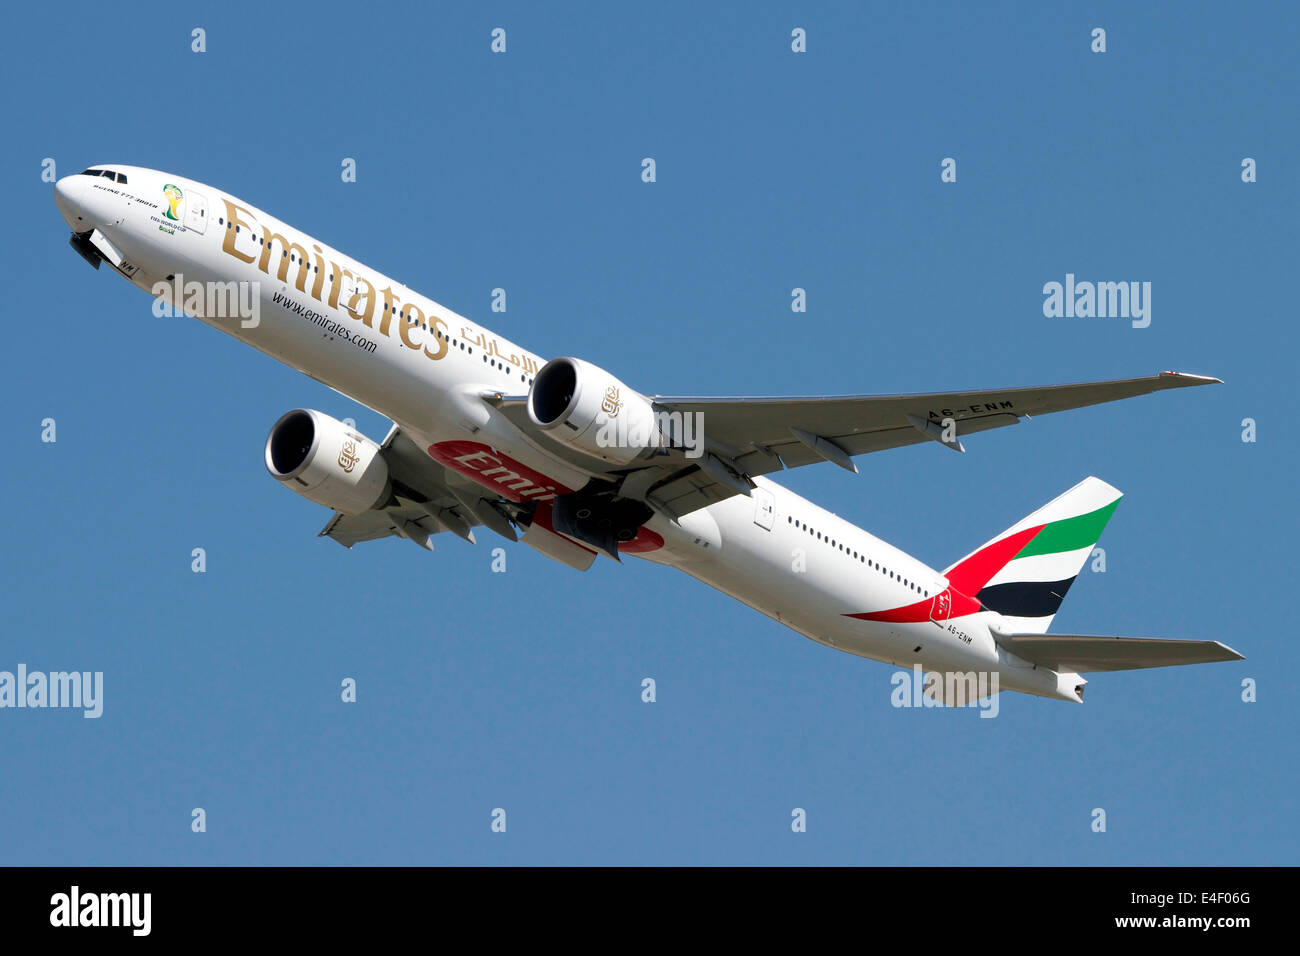 An Emirates Boeing 777-200 airliner. - Stock Image